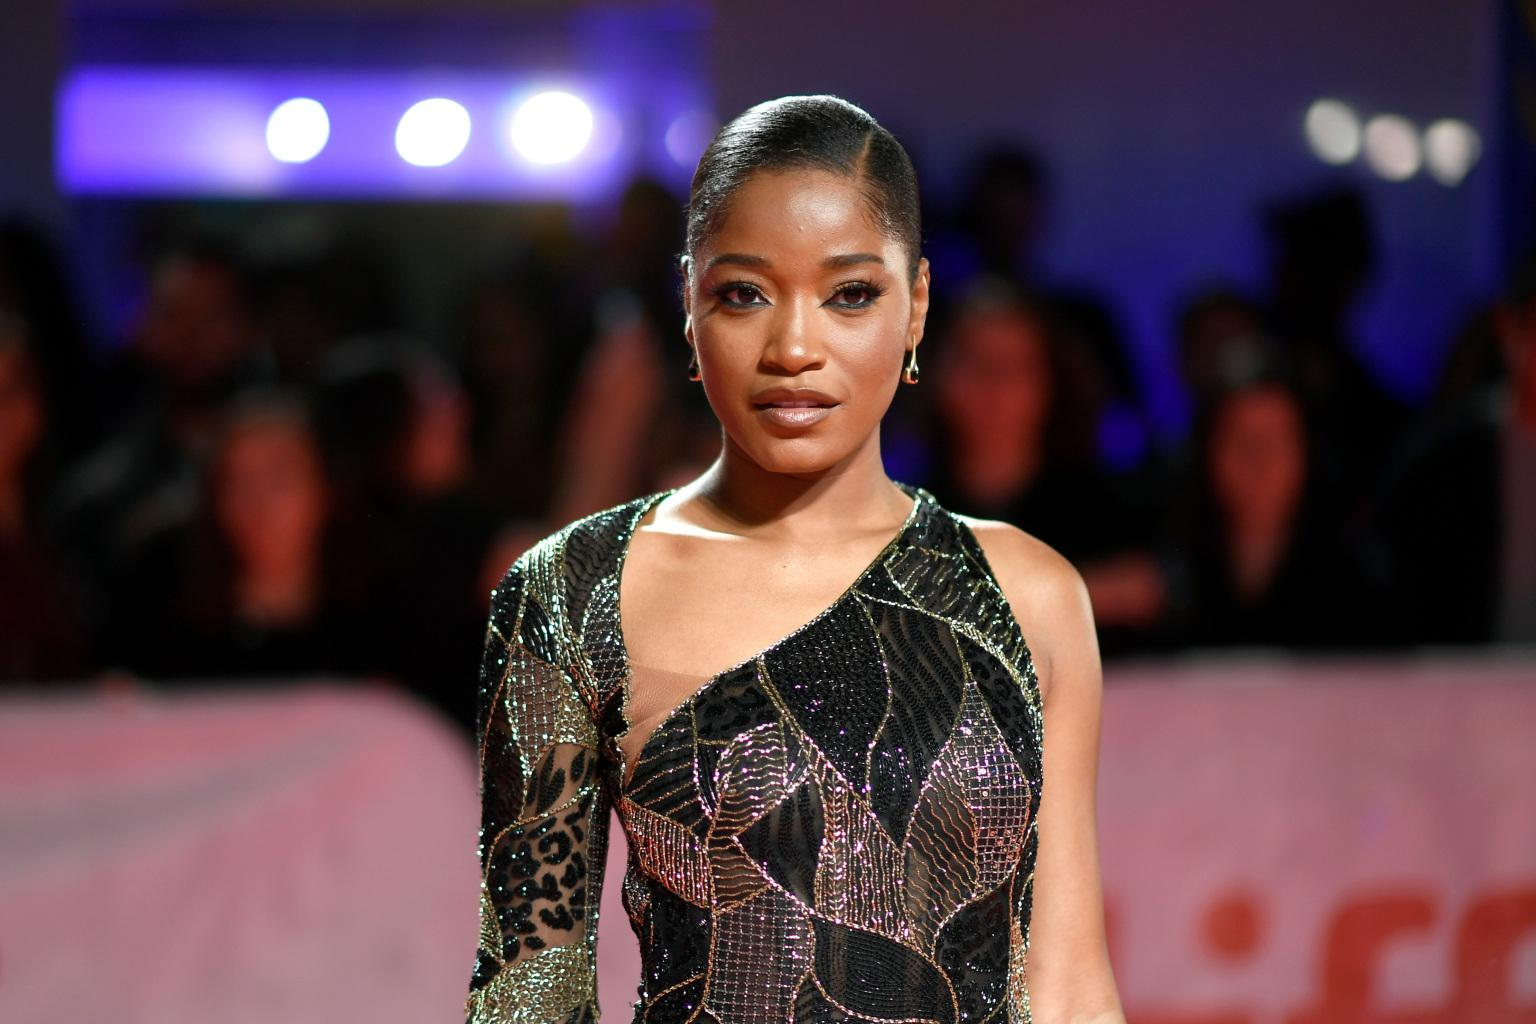 KeKe Palmer Has An Uplifting Message For The Community In The Wake Of Recent Killings